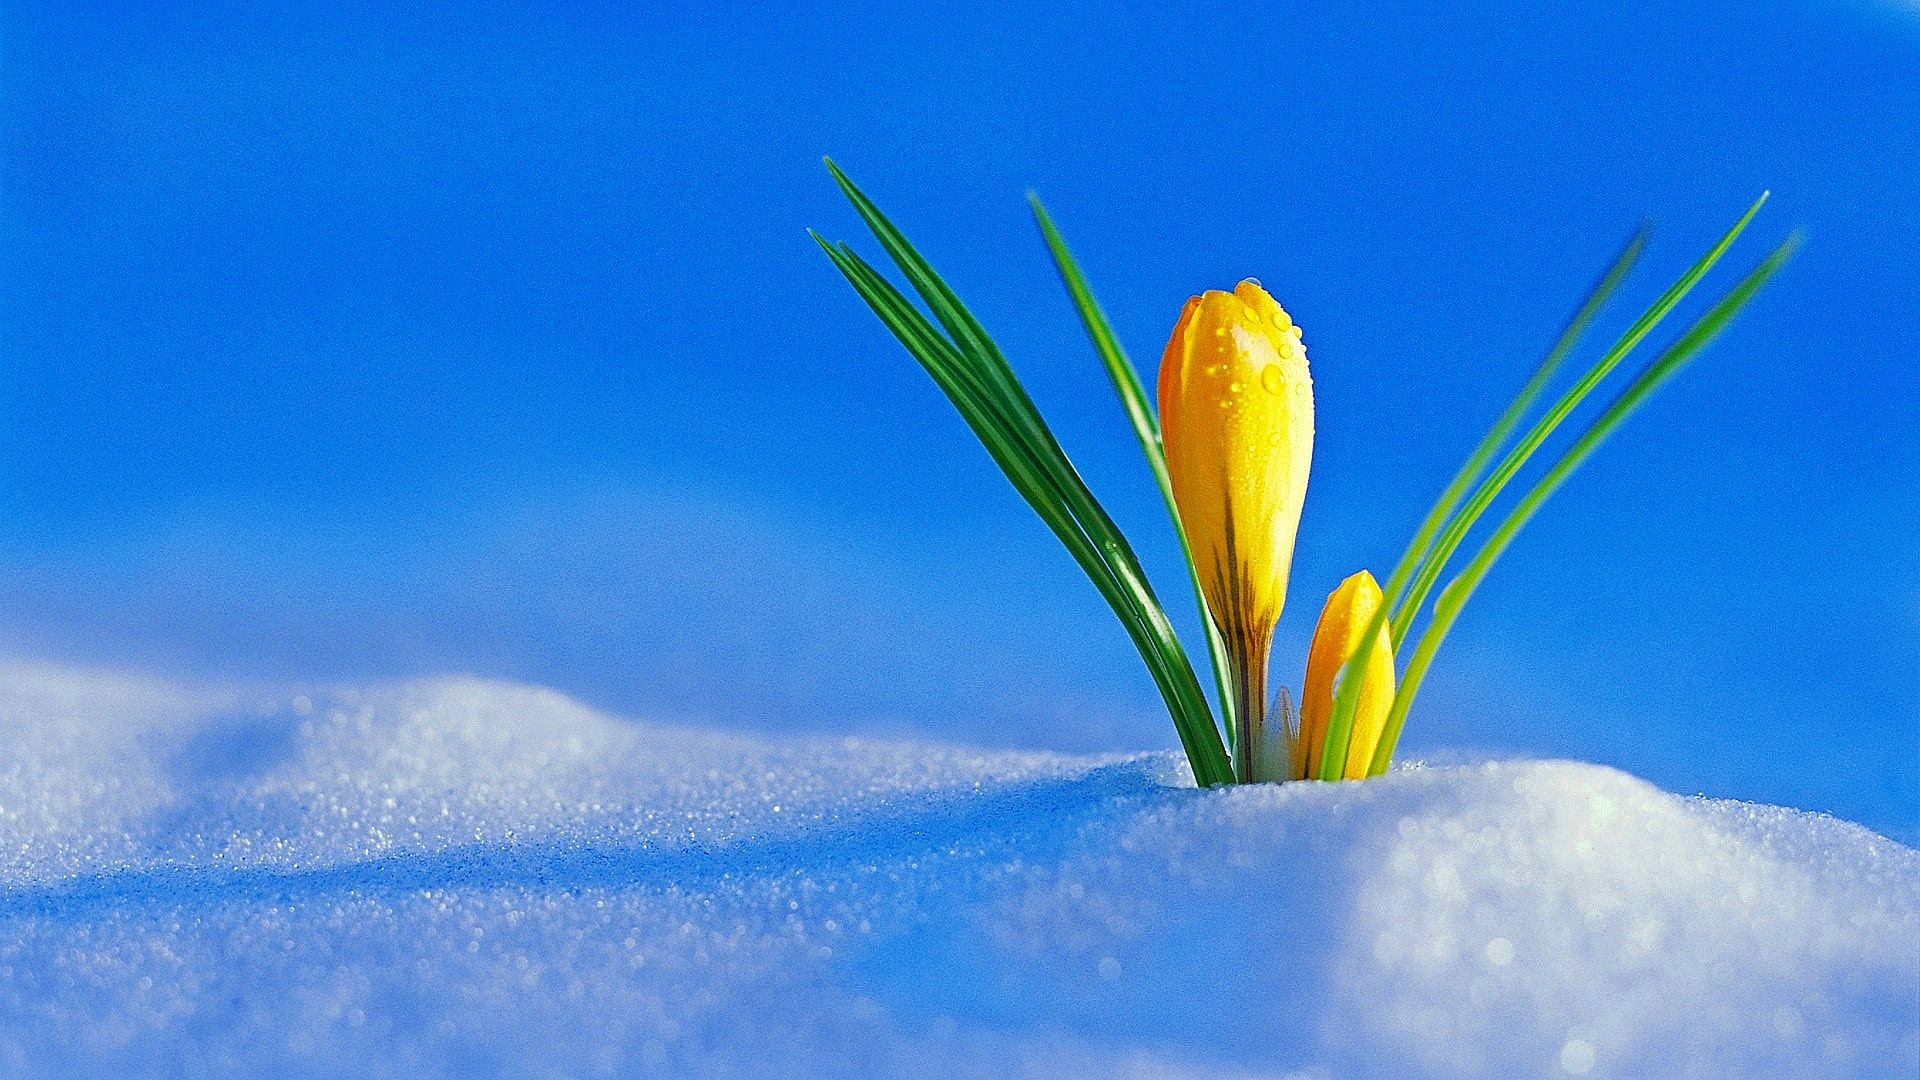 Cute Japanese Food Wallpaper Yellow Flowers Under The Cold Snow Winter And Spring Season